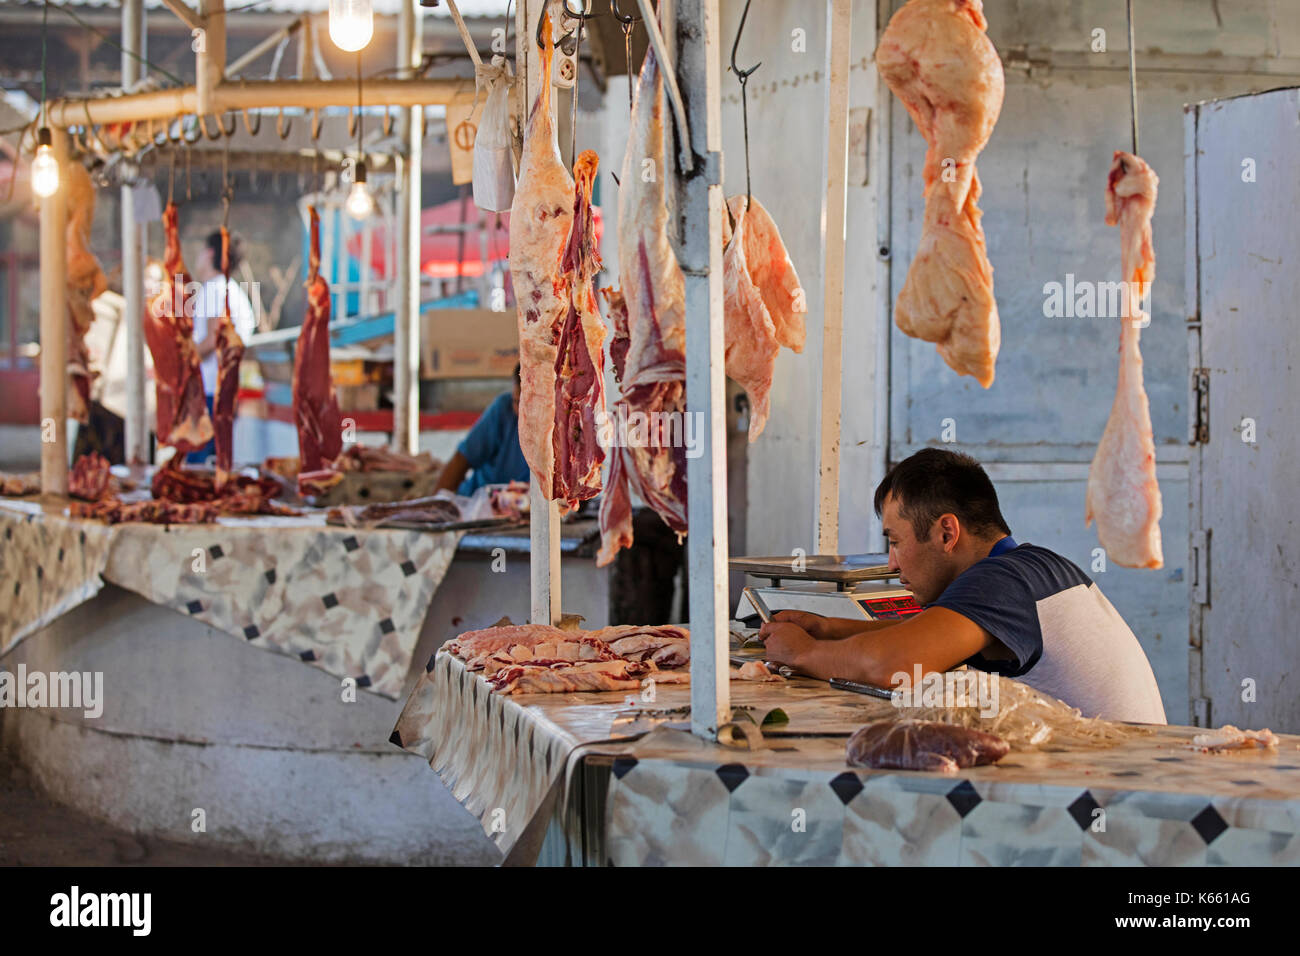 Kyrgyz vendor selling meat at unhygienic butcher stand at food market stall in the city Osh along the Silk Road in Kyrgyzstan - Stock Image